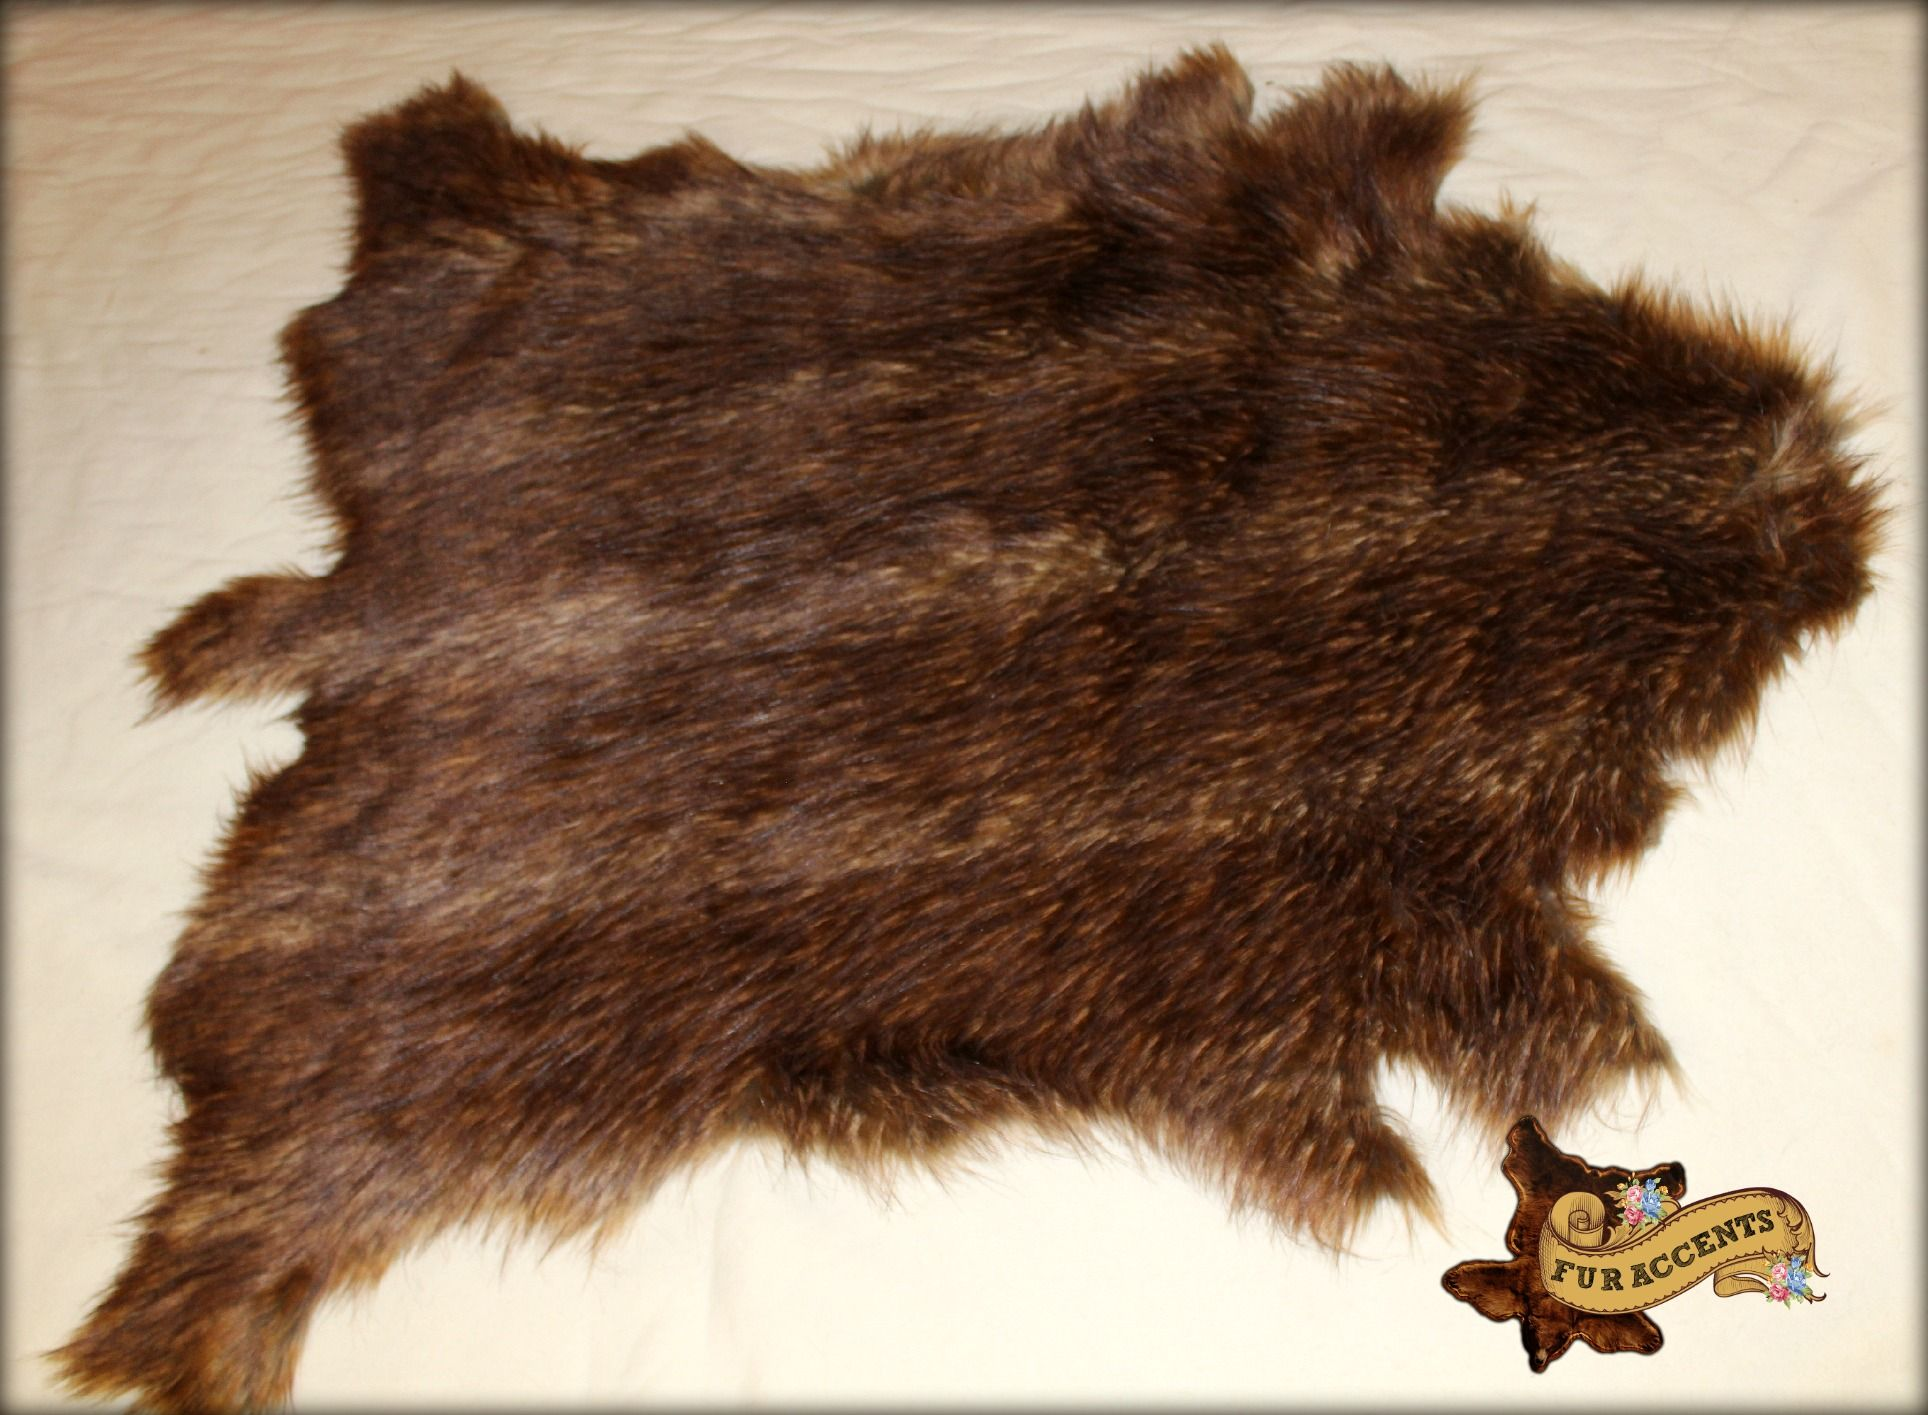 This Great Looking Fallow Deer Hide Pelt Rug Is Made From Polyester Faux Fur Be Kind To Animals Always